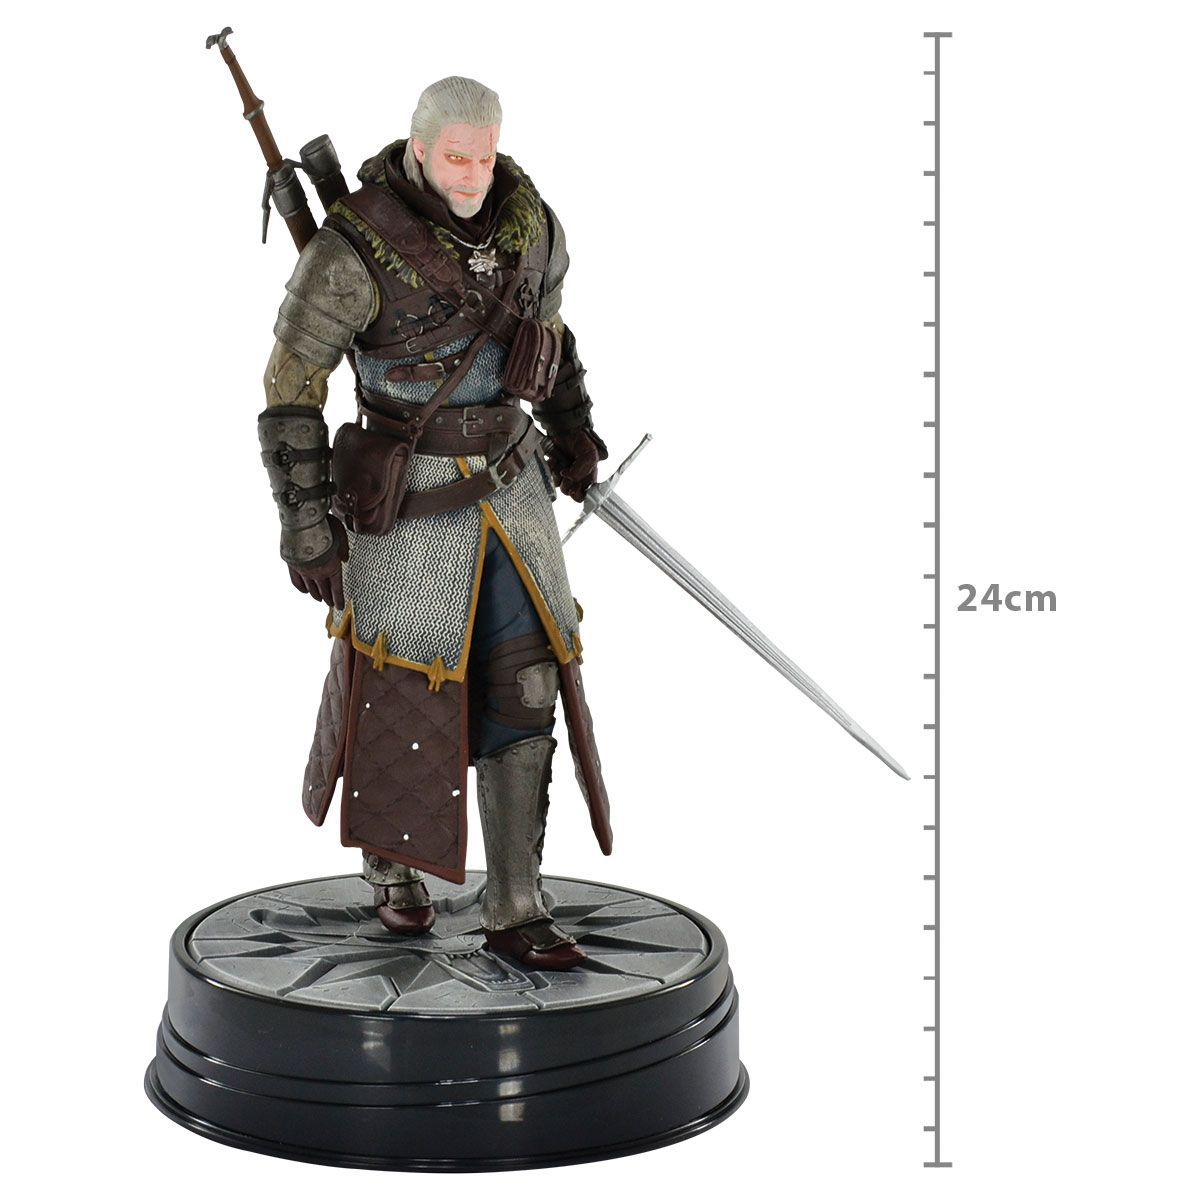 Geralt GrandMaster - The Witcher 3 - Dark Horse Deluxe